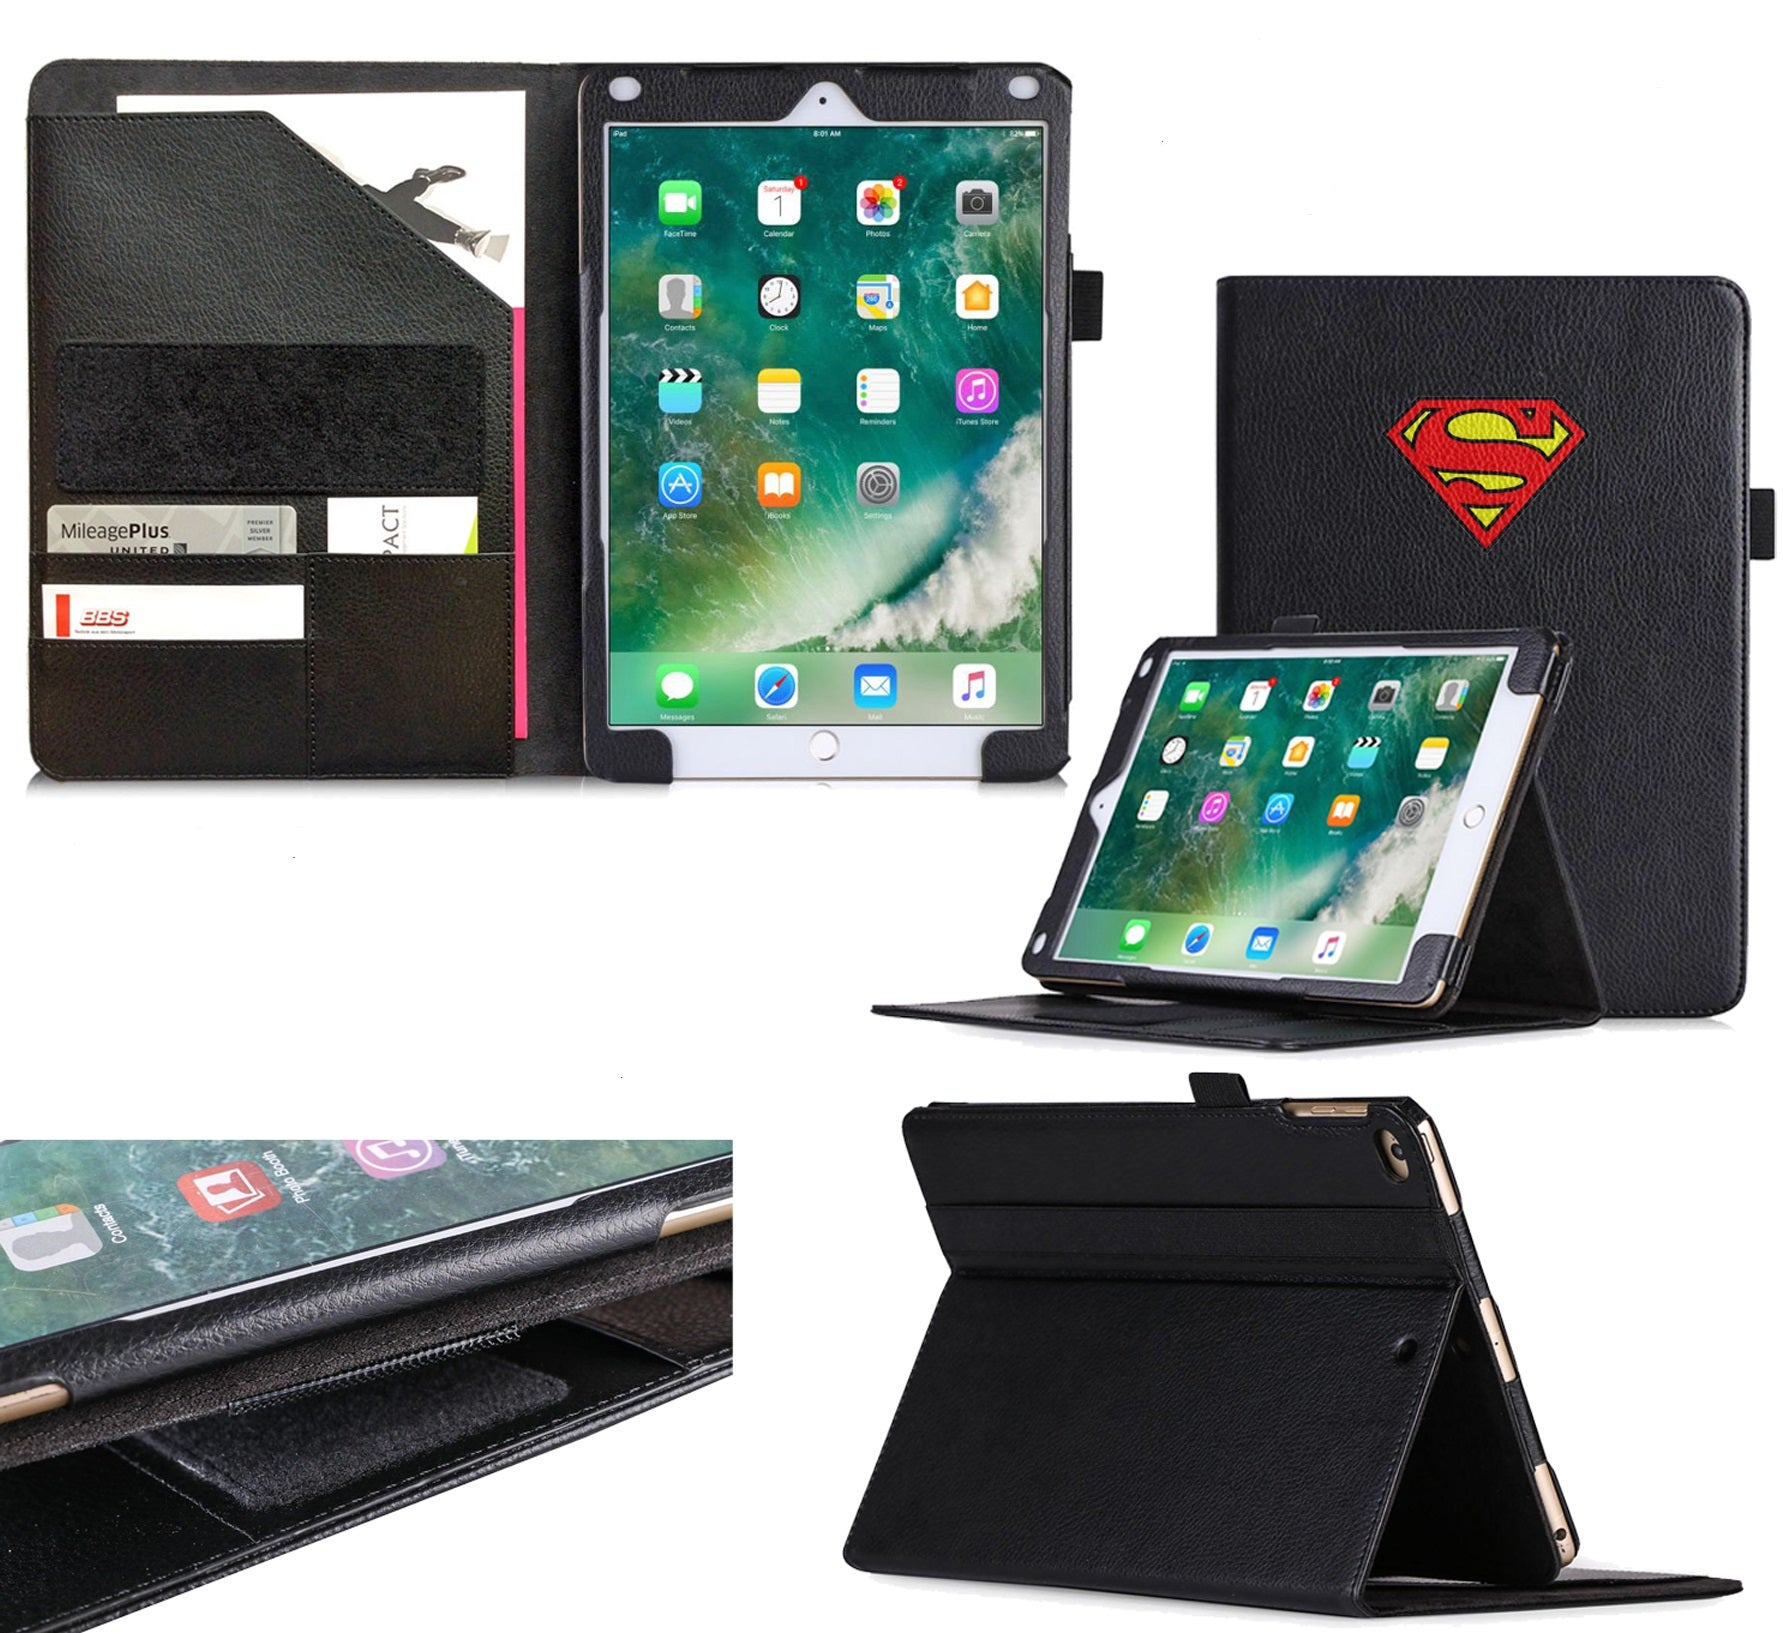 huge discount d11ce 5b440 Customized iPad Air Cases & Covers - Add Your Company Logo - PROMOrx